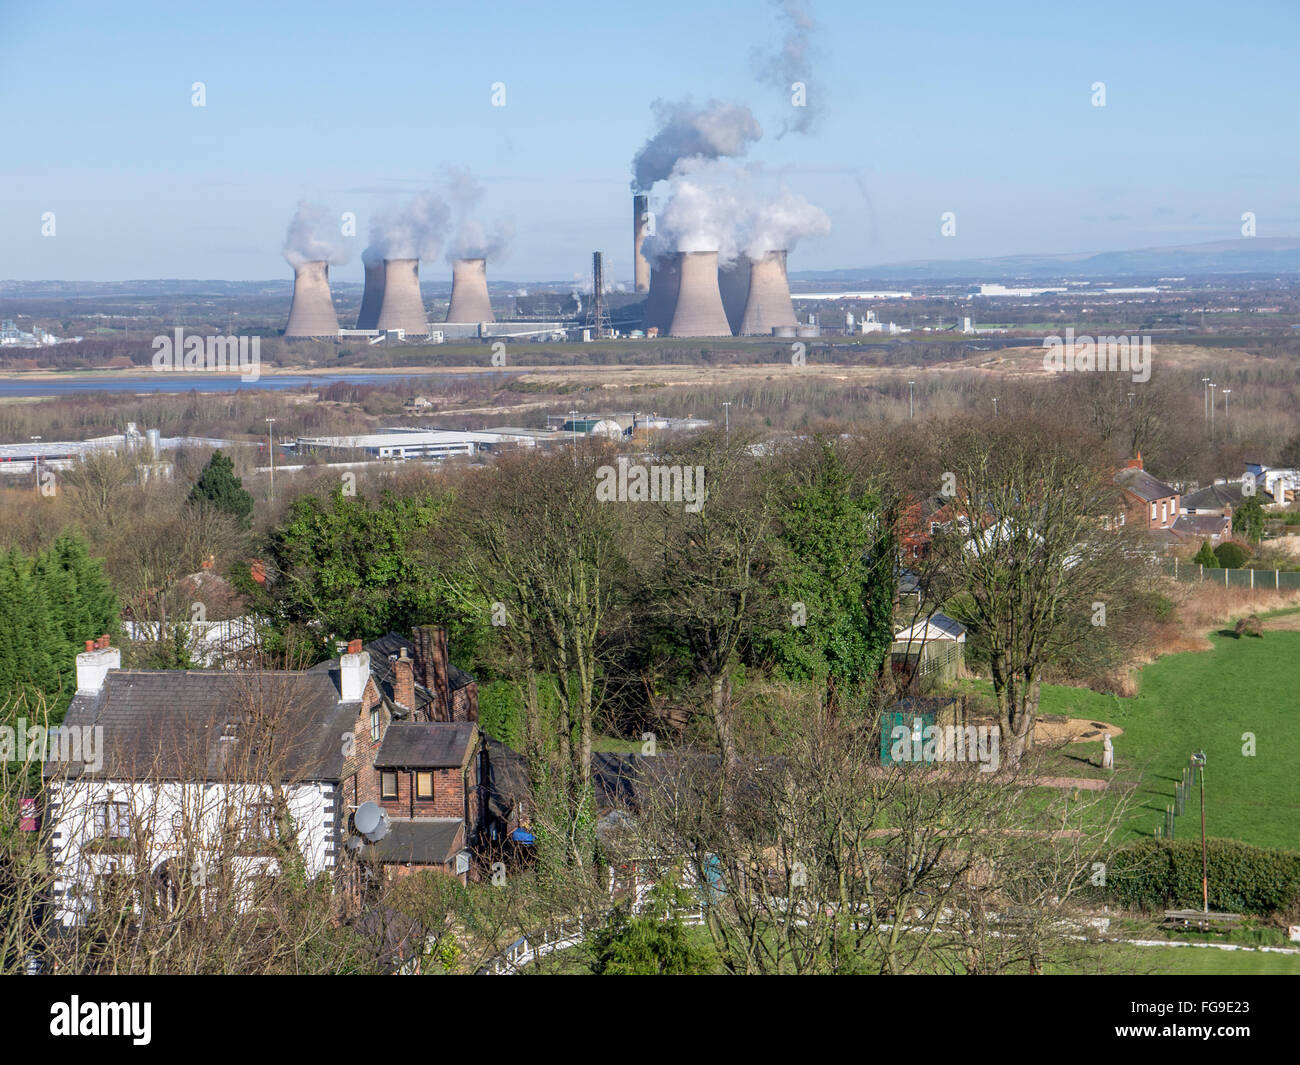 Local public house in the foreground and Fiddlers Ferry power station in the background. - Stock Image